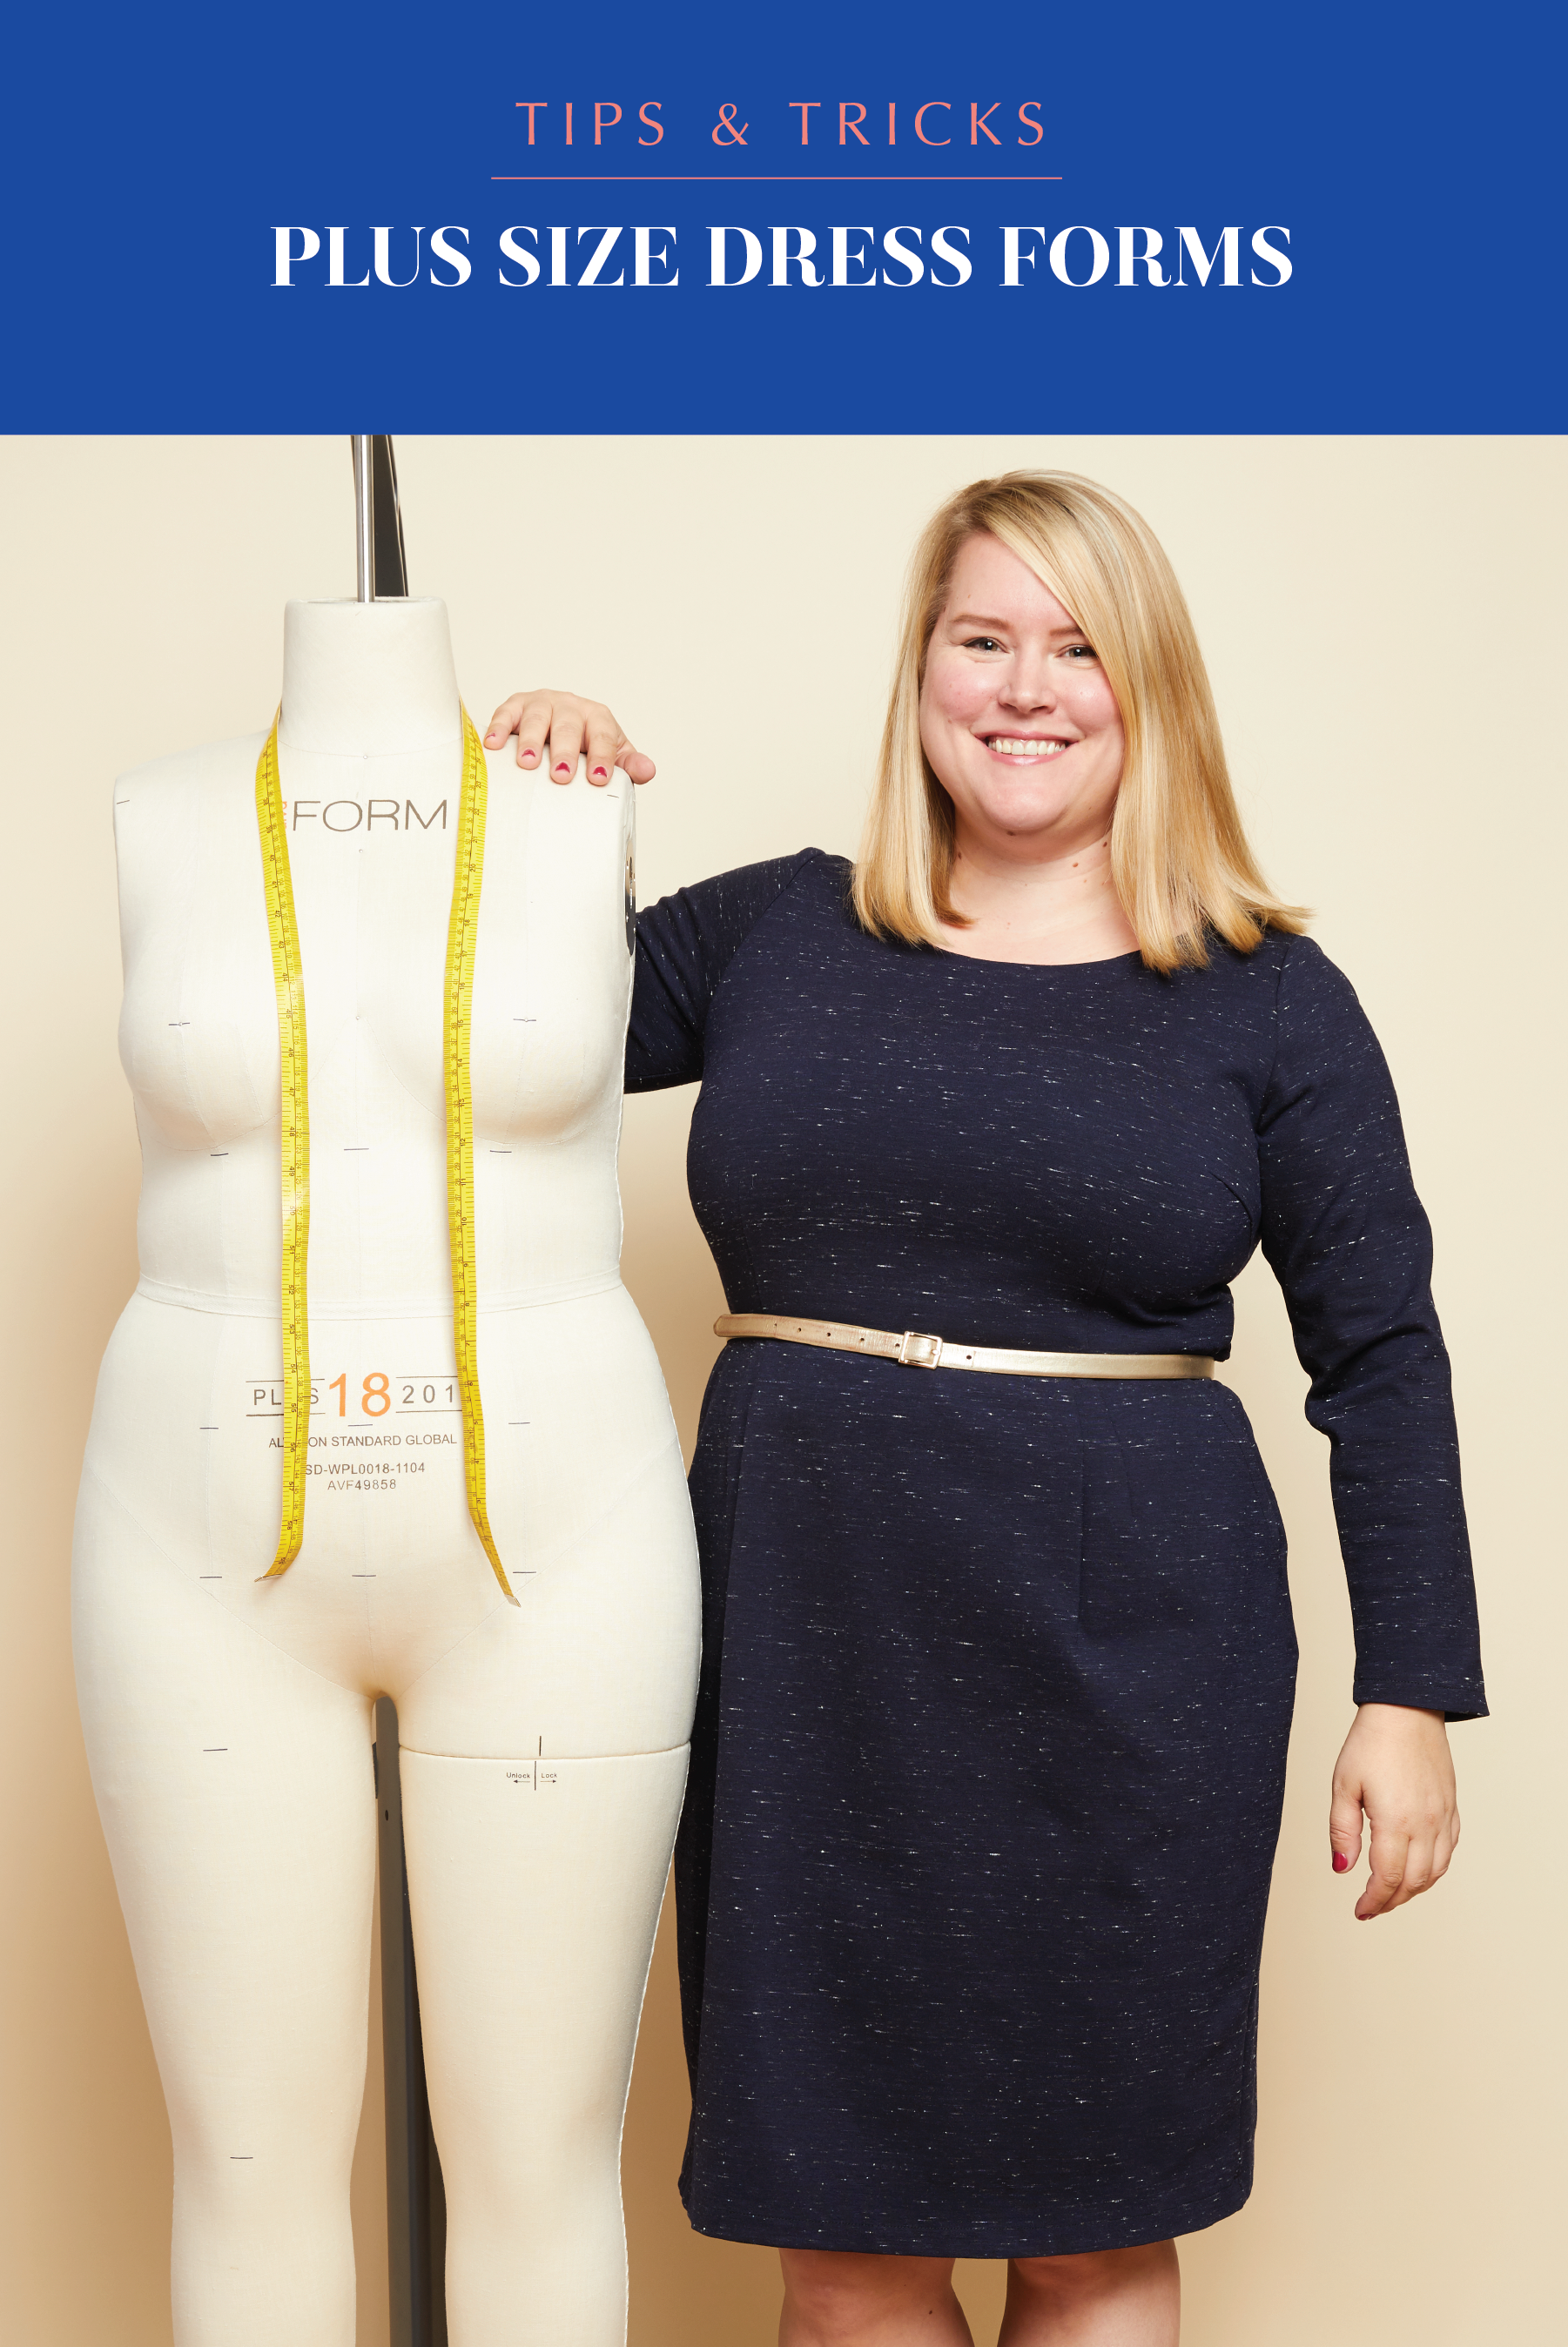 Plus size sewing dress forms: what you need to know | Cashmerette